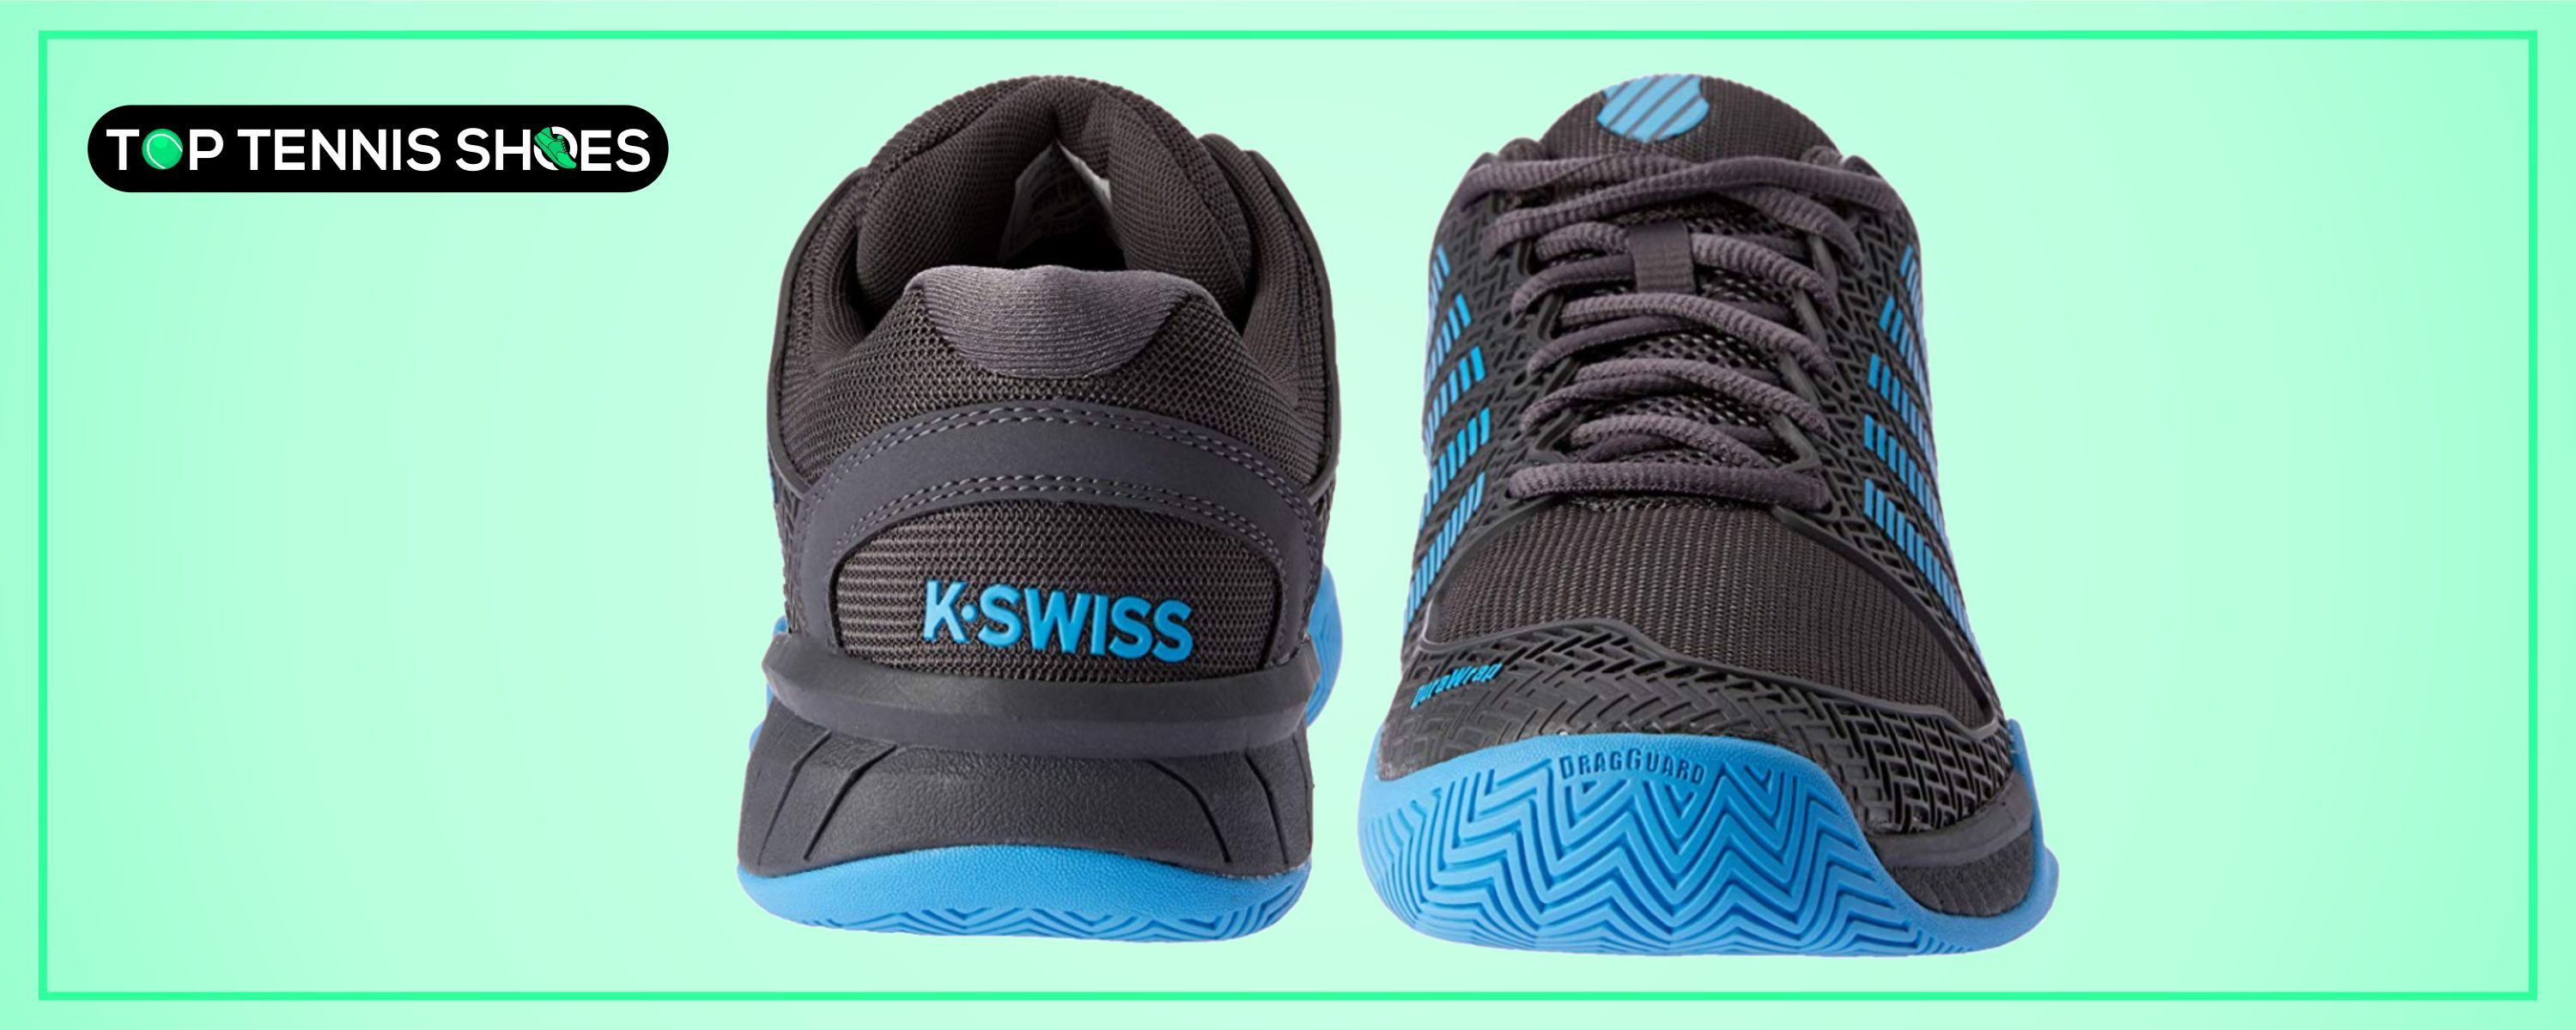 K-Swiss Tennis Shoes for Plantar Fasciitis